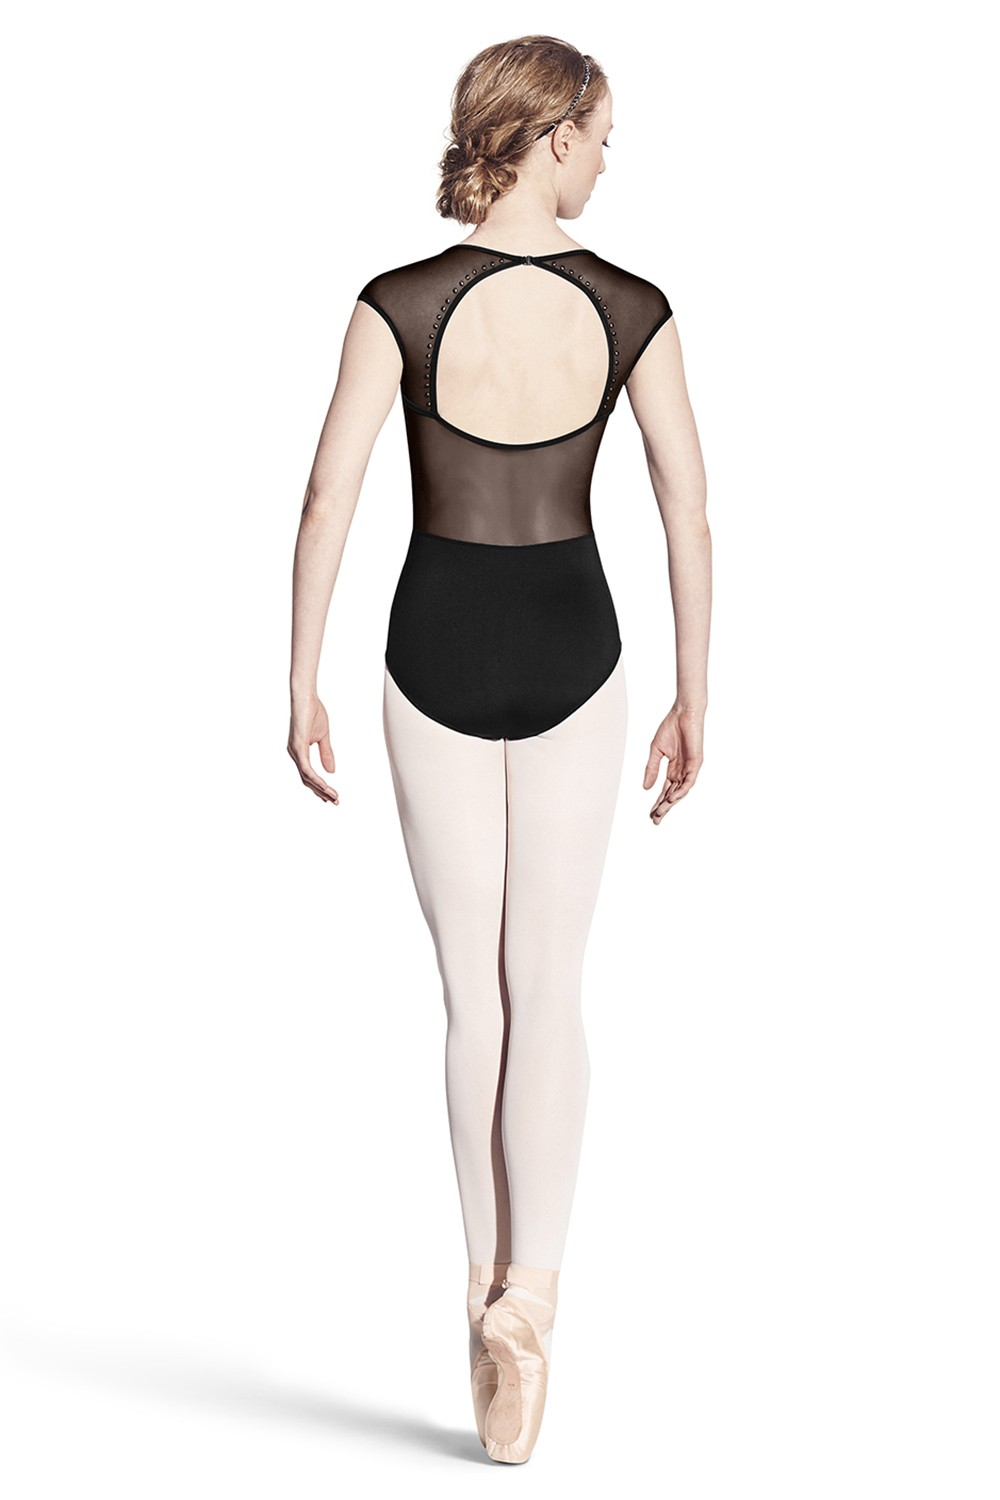 Dace Women's Dance Leotards